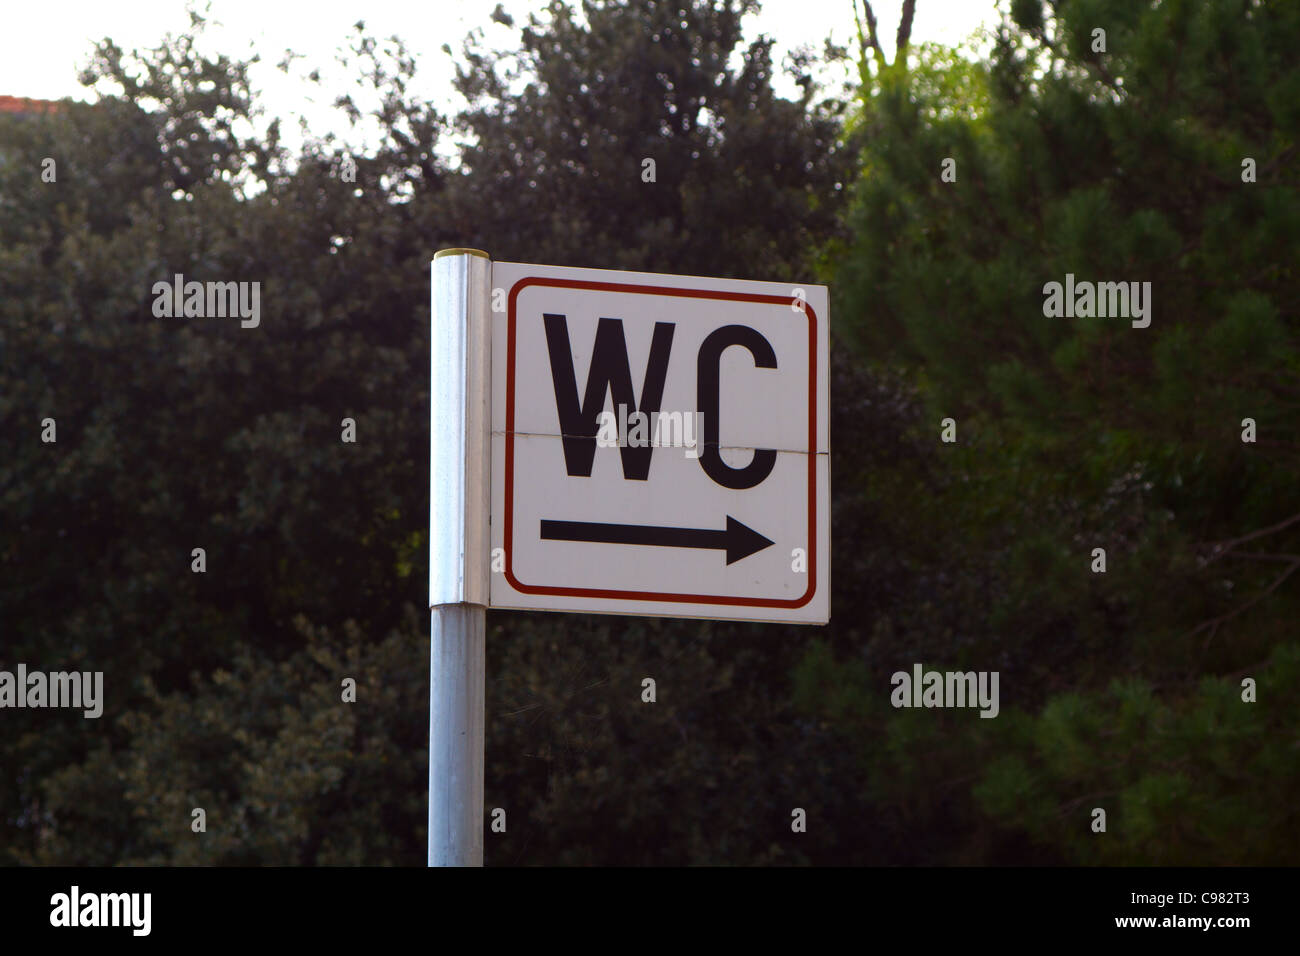 Sign for toilet - WC with arrow pointing to bushes - Stock Image